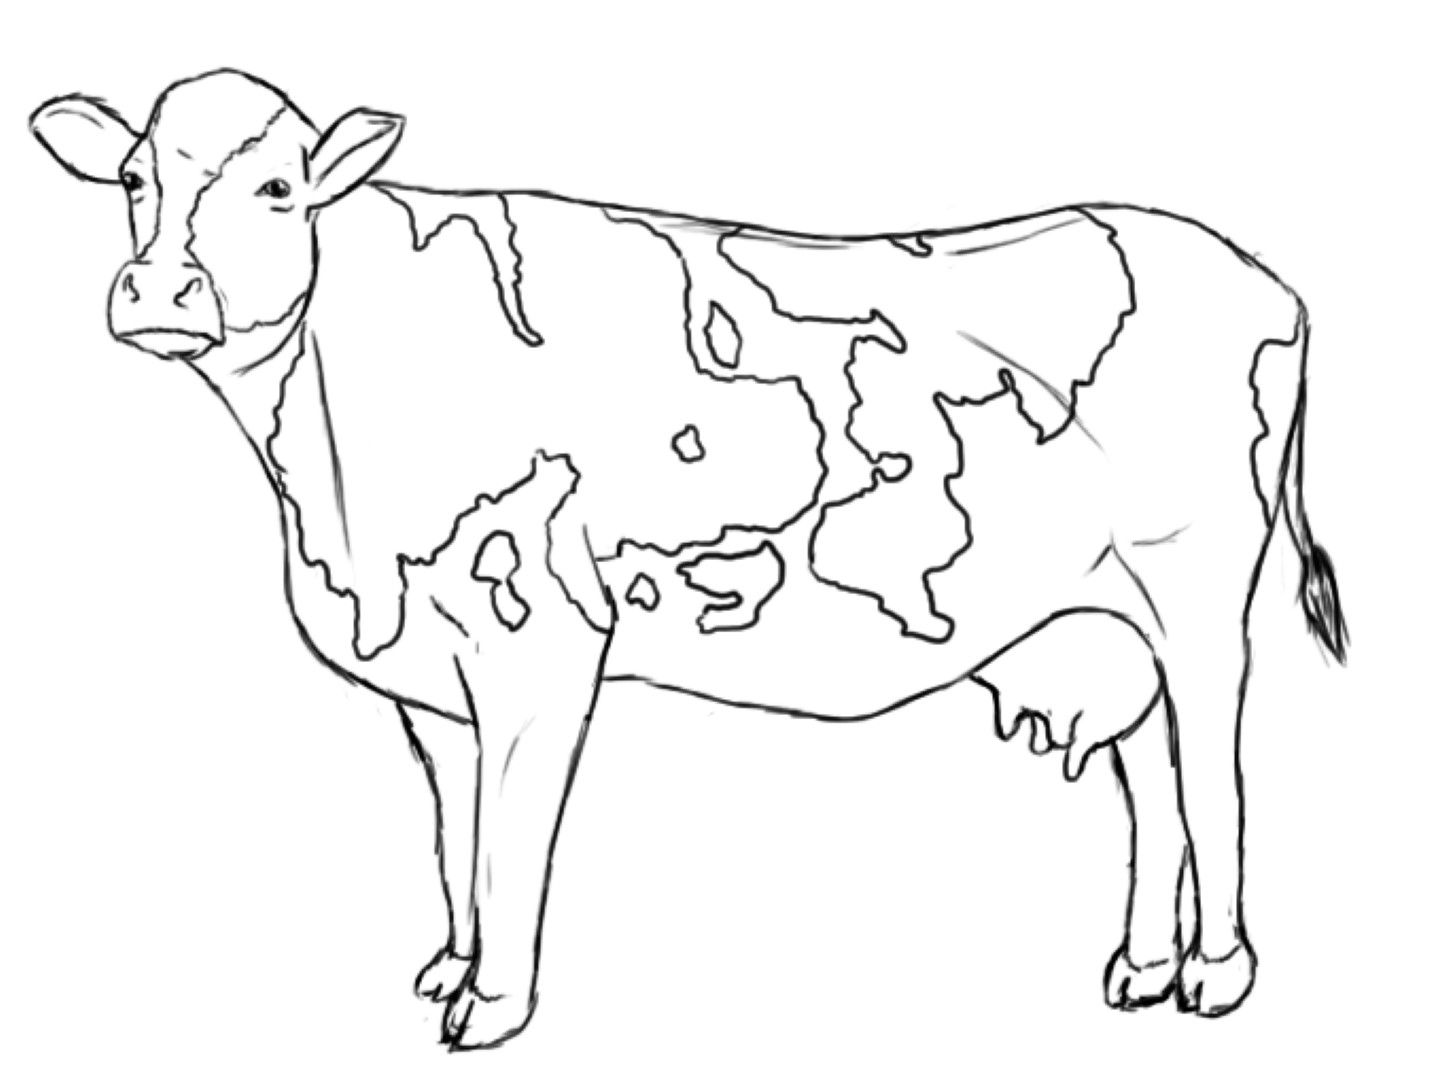 coloring cow drawing easy cute cow animal coloring books for kids drawing cow coloring easy drawing